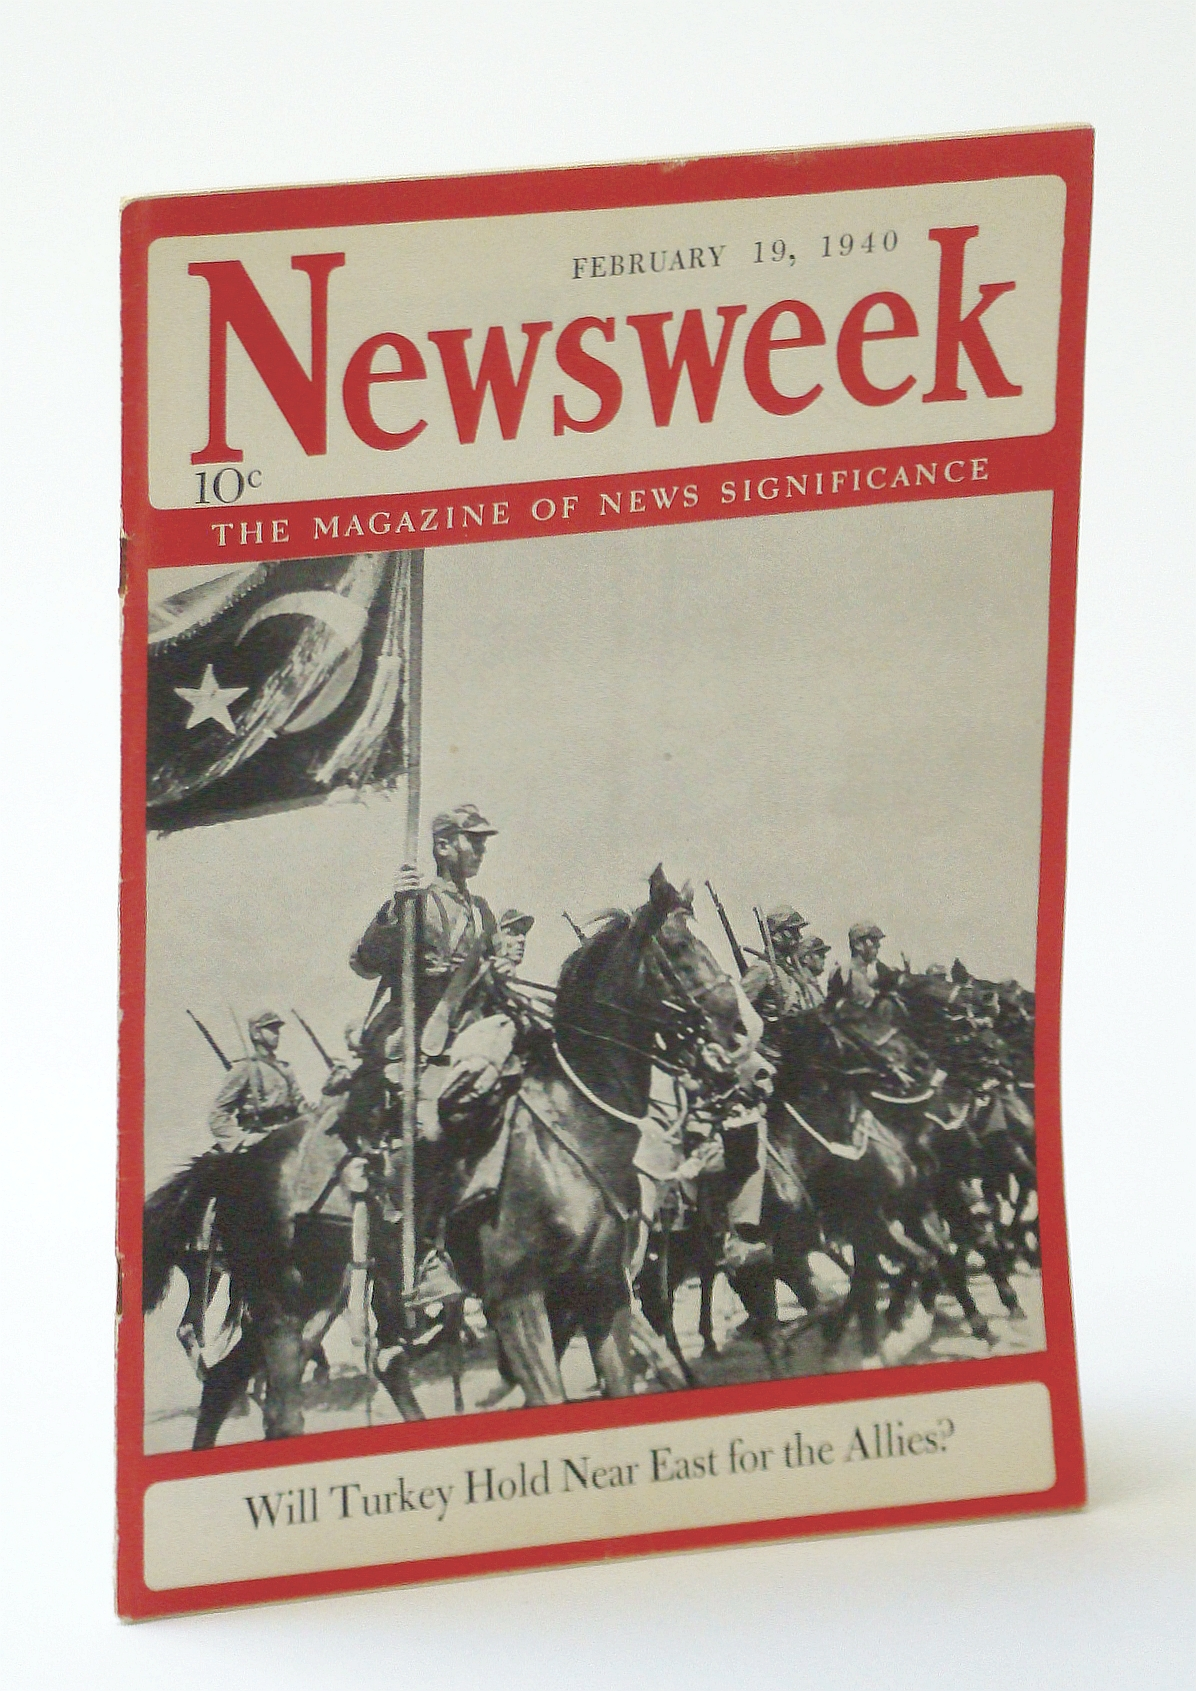 Image for Newsweek - The Magazine of News Significance: February 19, 1940 - Will Turkey Hold Near East for the Allies?